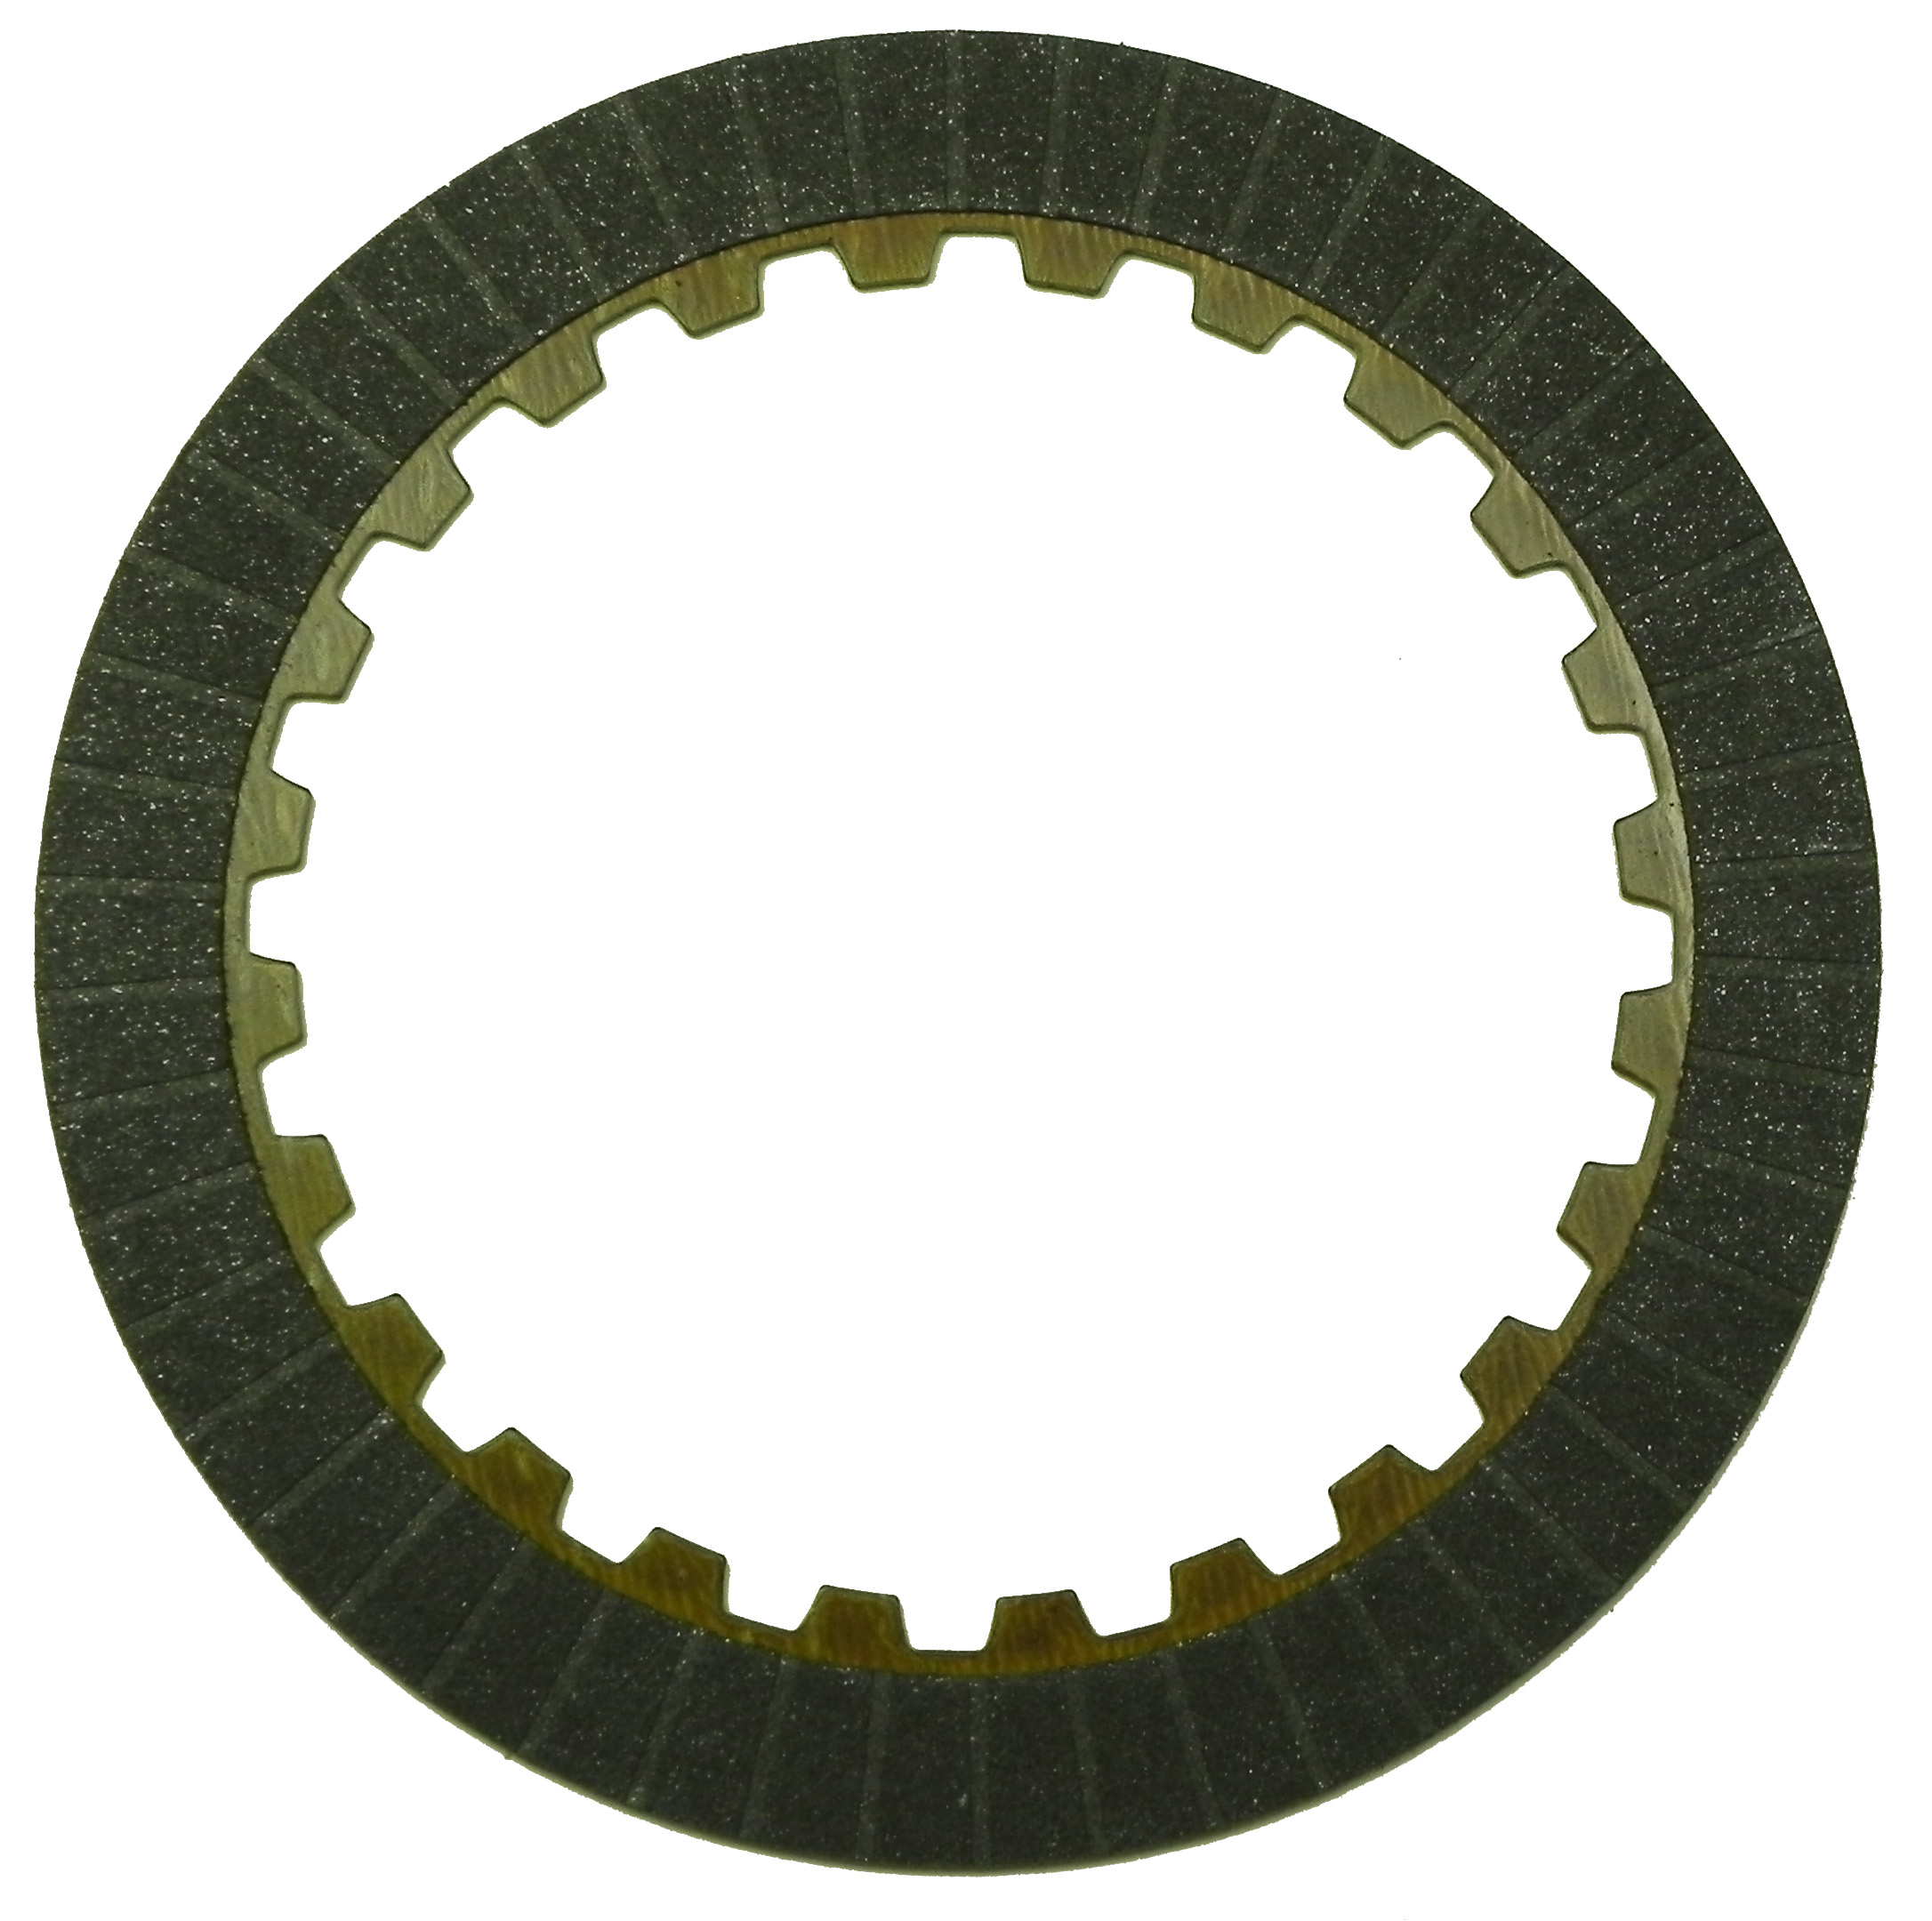 45RFE, 545RFE, 65RFE, 66RFE, 68RFE High Energy Friction Clutch Plate